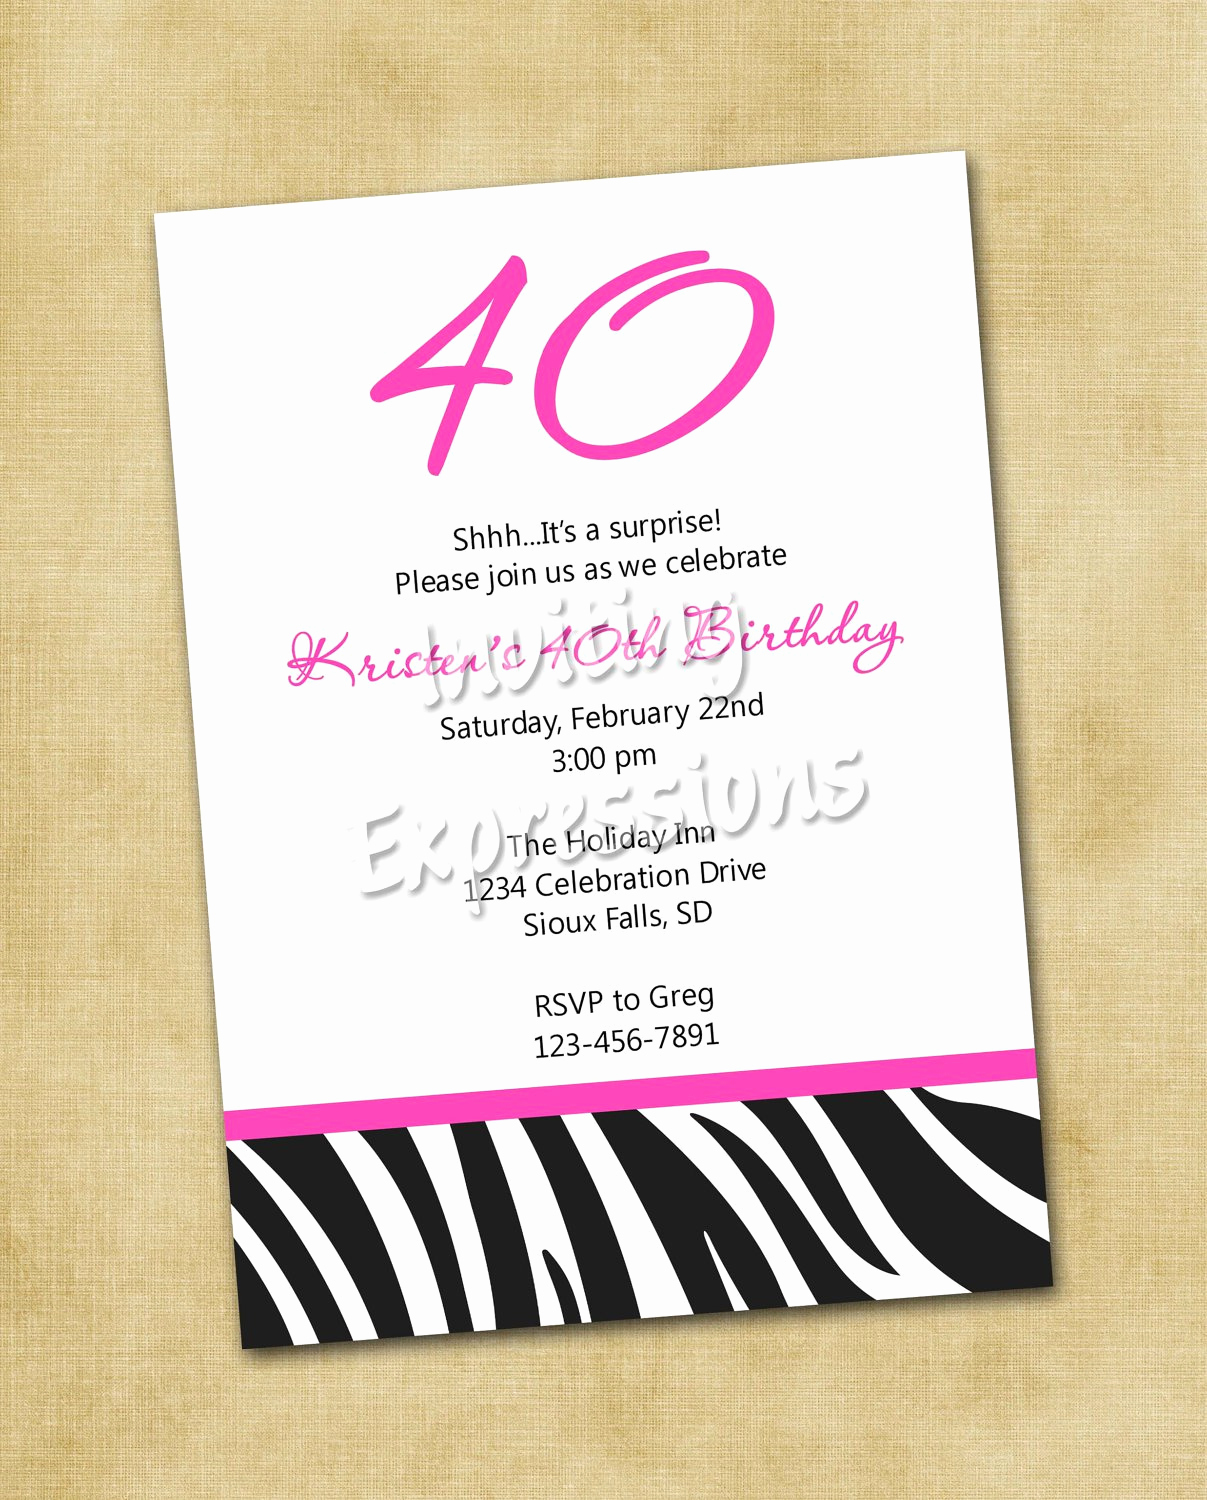 40th Birthday Party Invitation Wording Inspirational Surprise 40th Birthday Invitation Wording Samples